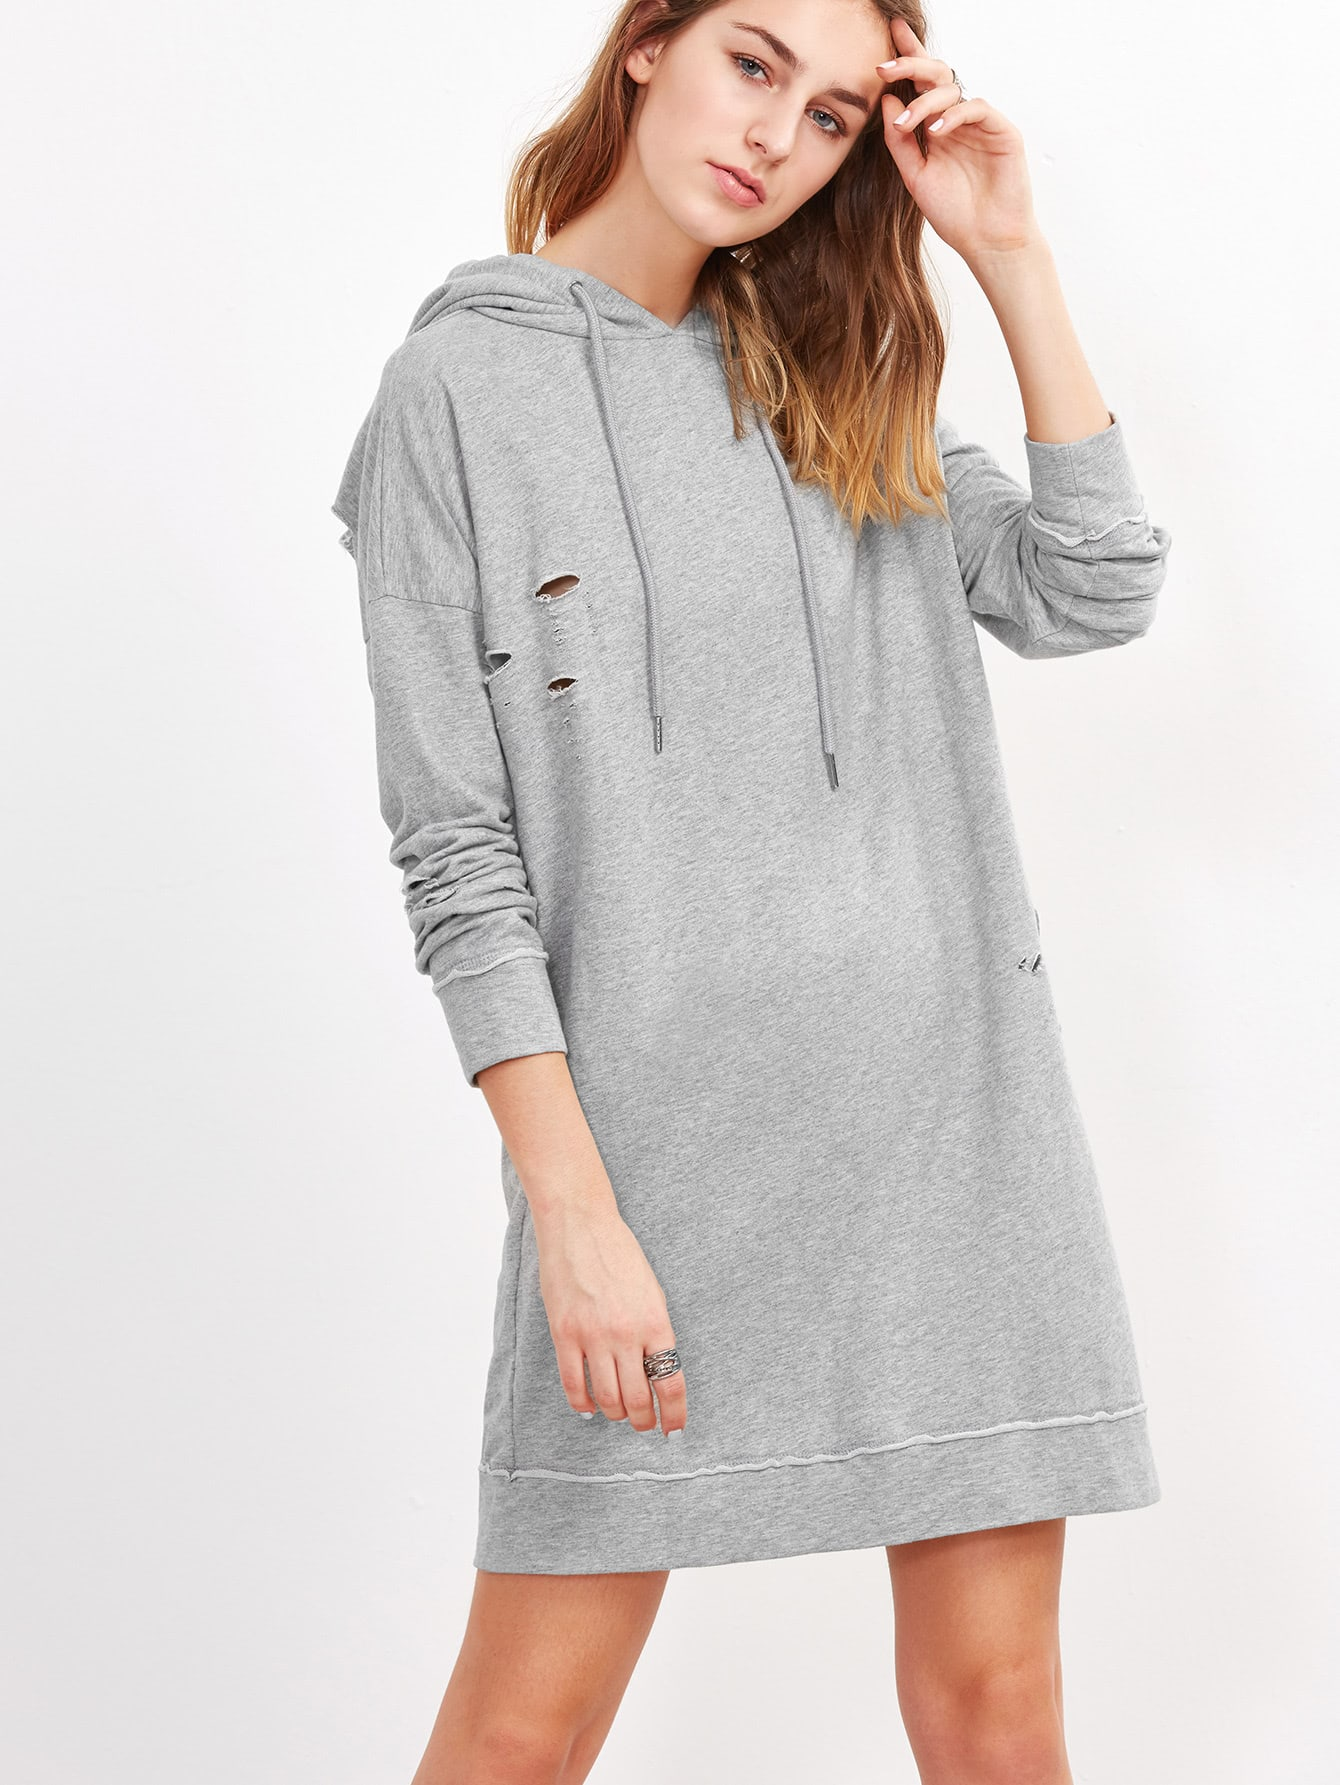 Heather Grey Drop Shoulder Ripped Hoodie Dress speedlink notary дизайн под кожу brown